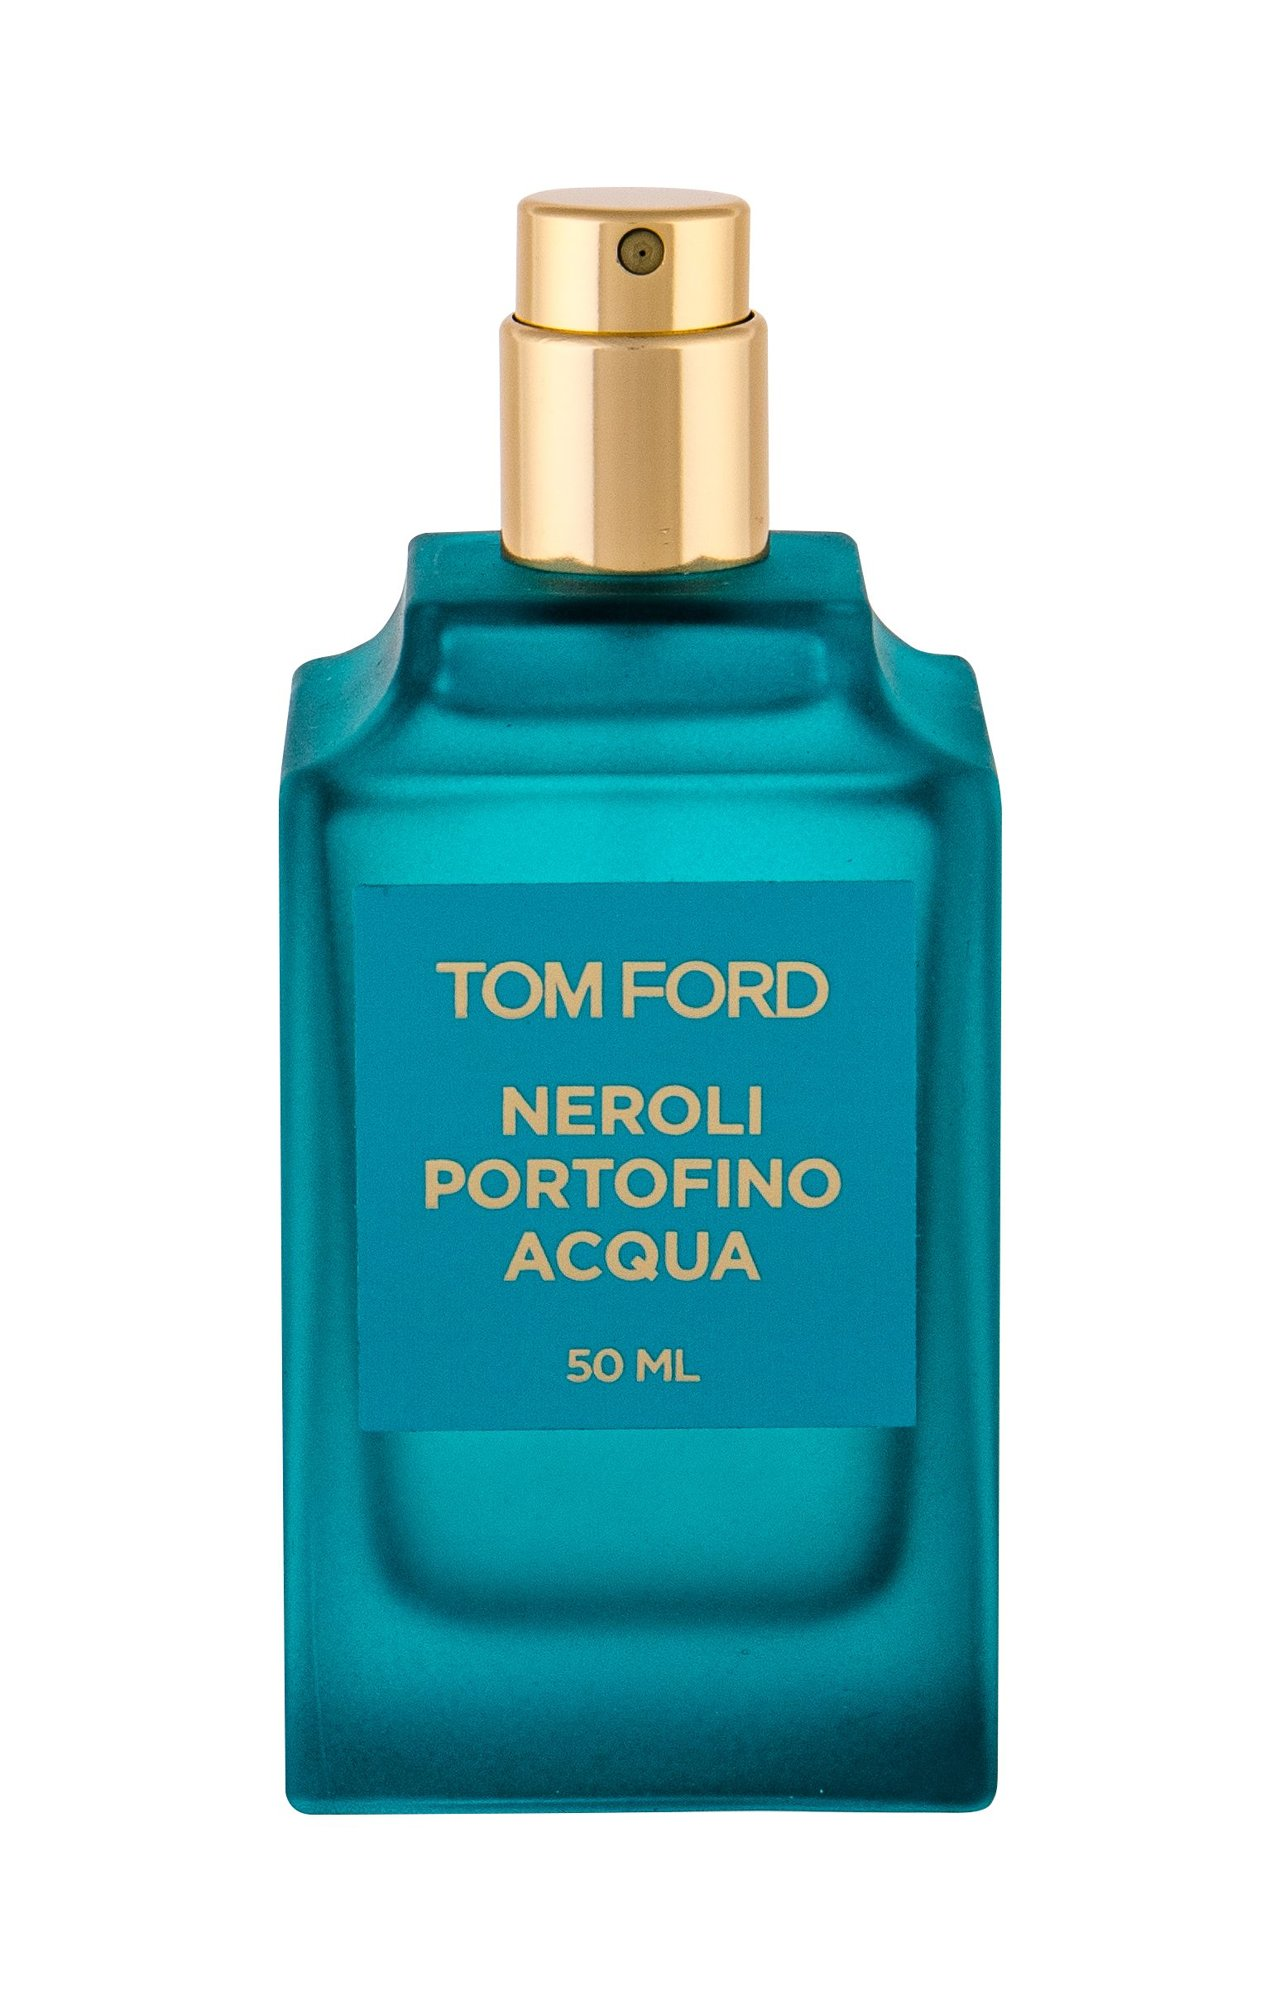 TOM FORD Neroli Portofino Eau de Toilette 50ml